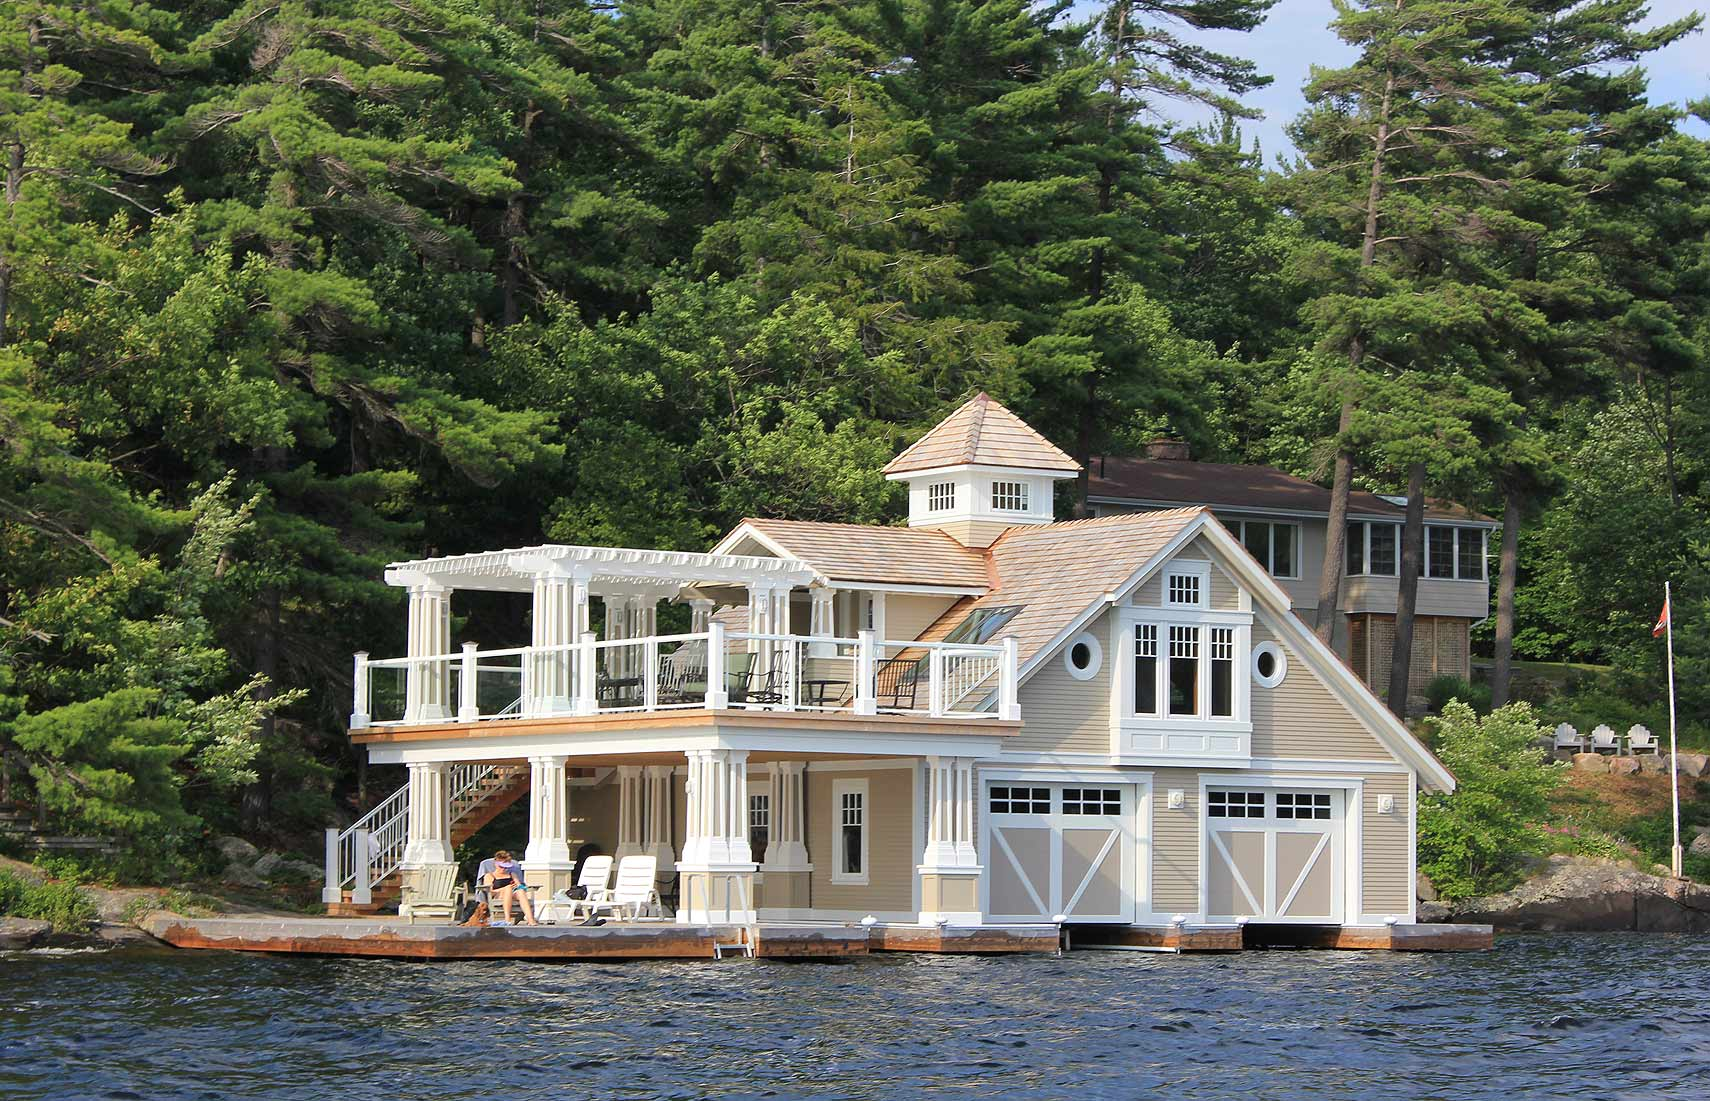 Lake Muskoka Boathouse (2) - Ontario Cottage and Vacation Home